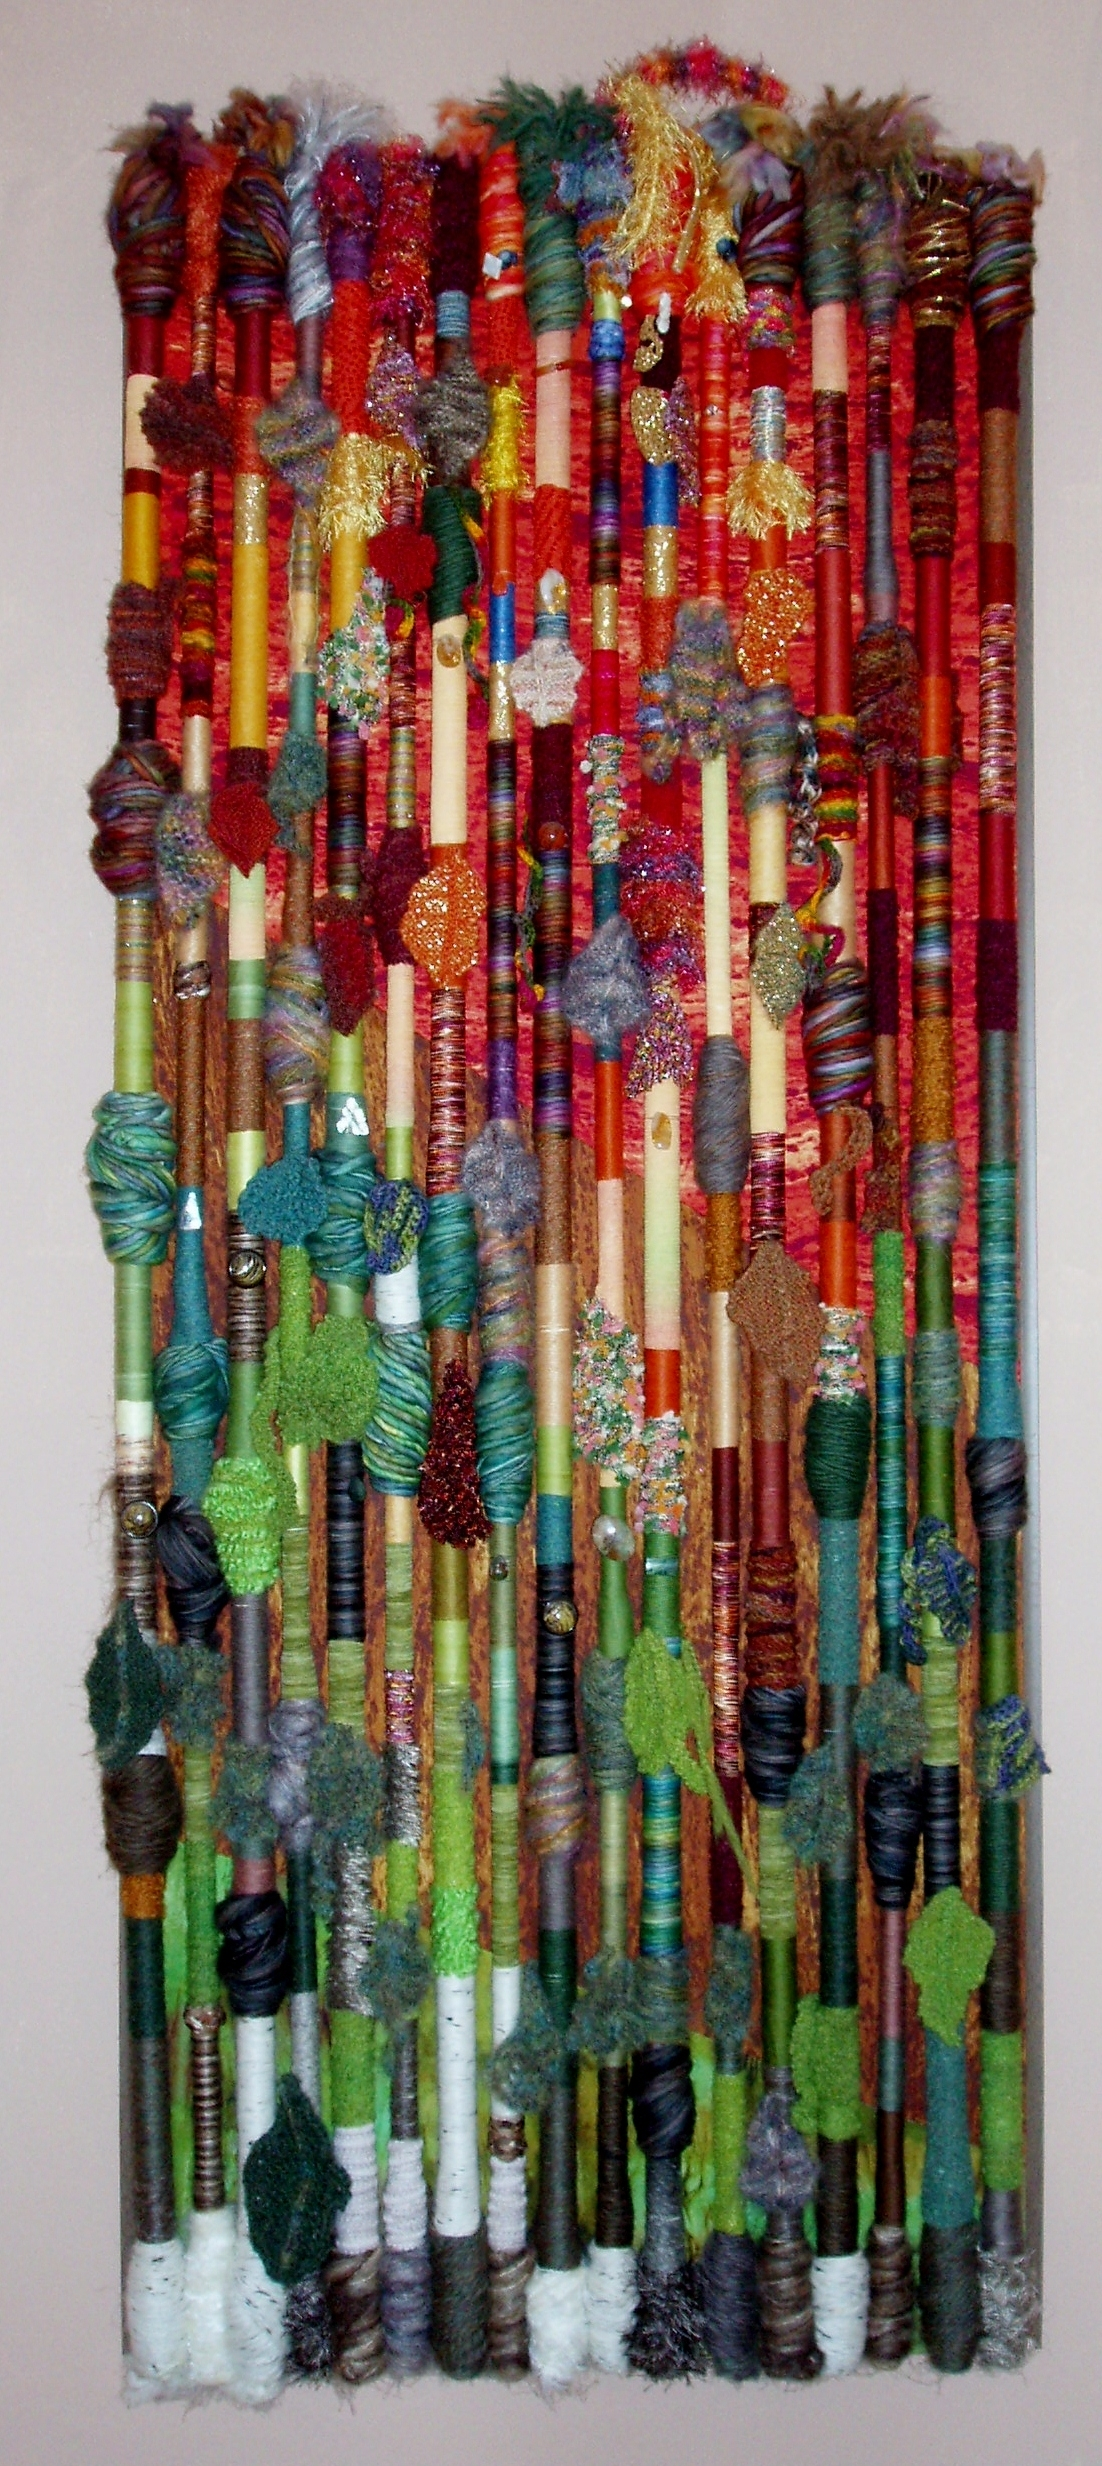 40 Bold And Modern Textile Wall Hangings | Panfan Site Throughout Current Fabric For Wall Art Hangings (View 7 of 15)